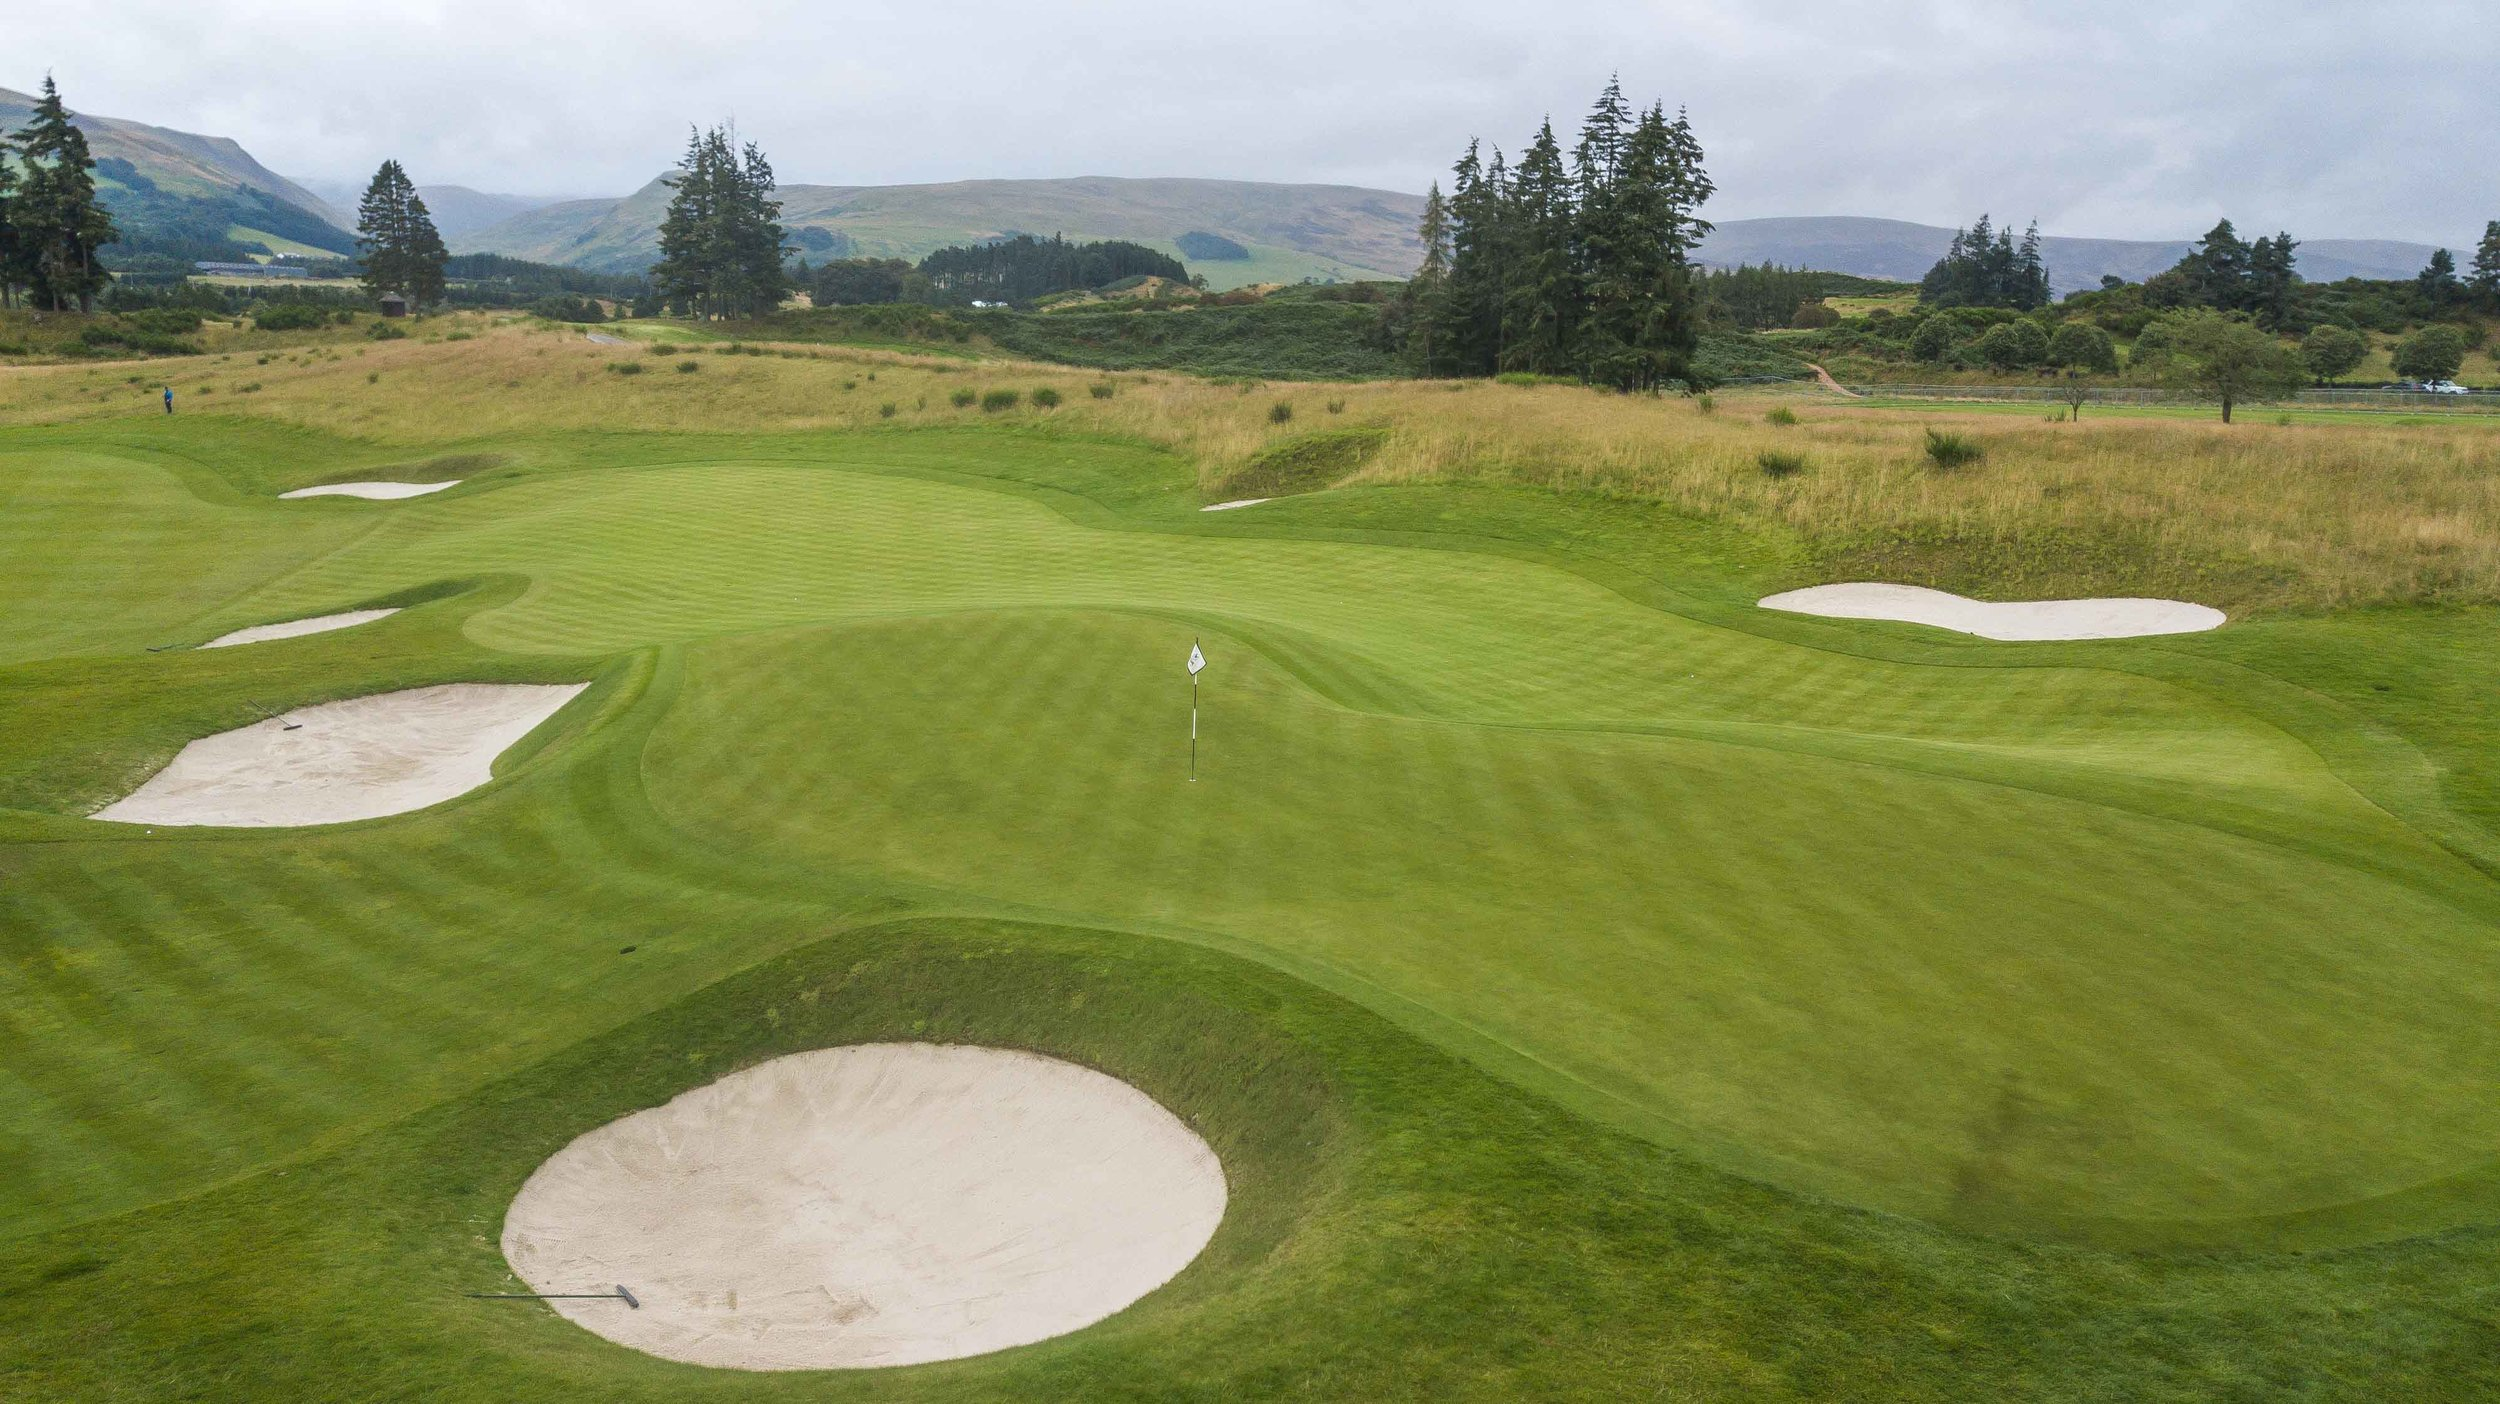 The final hole of Scottish golf was Gleneagles 18th hole.